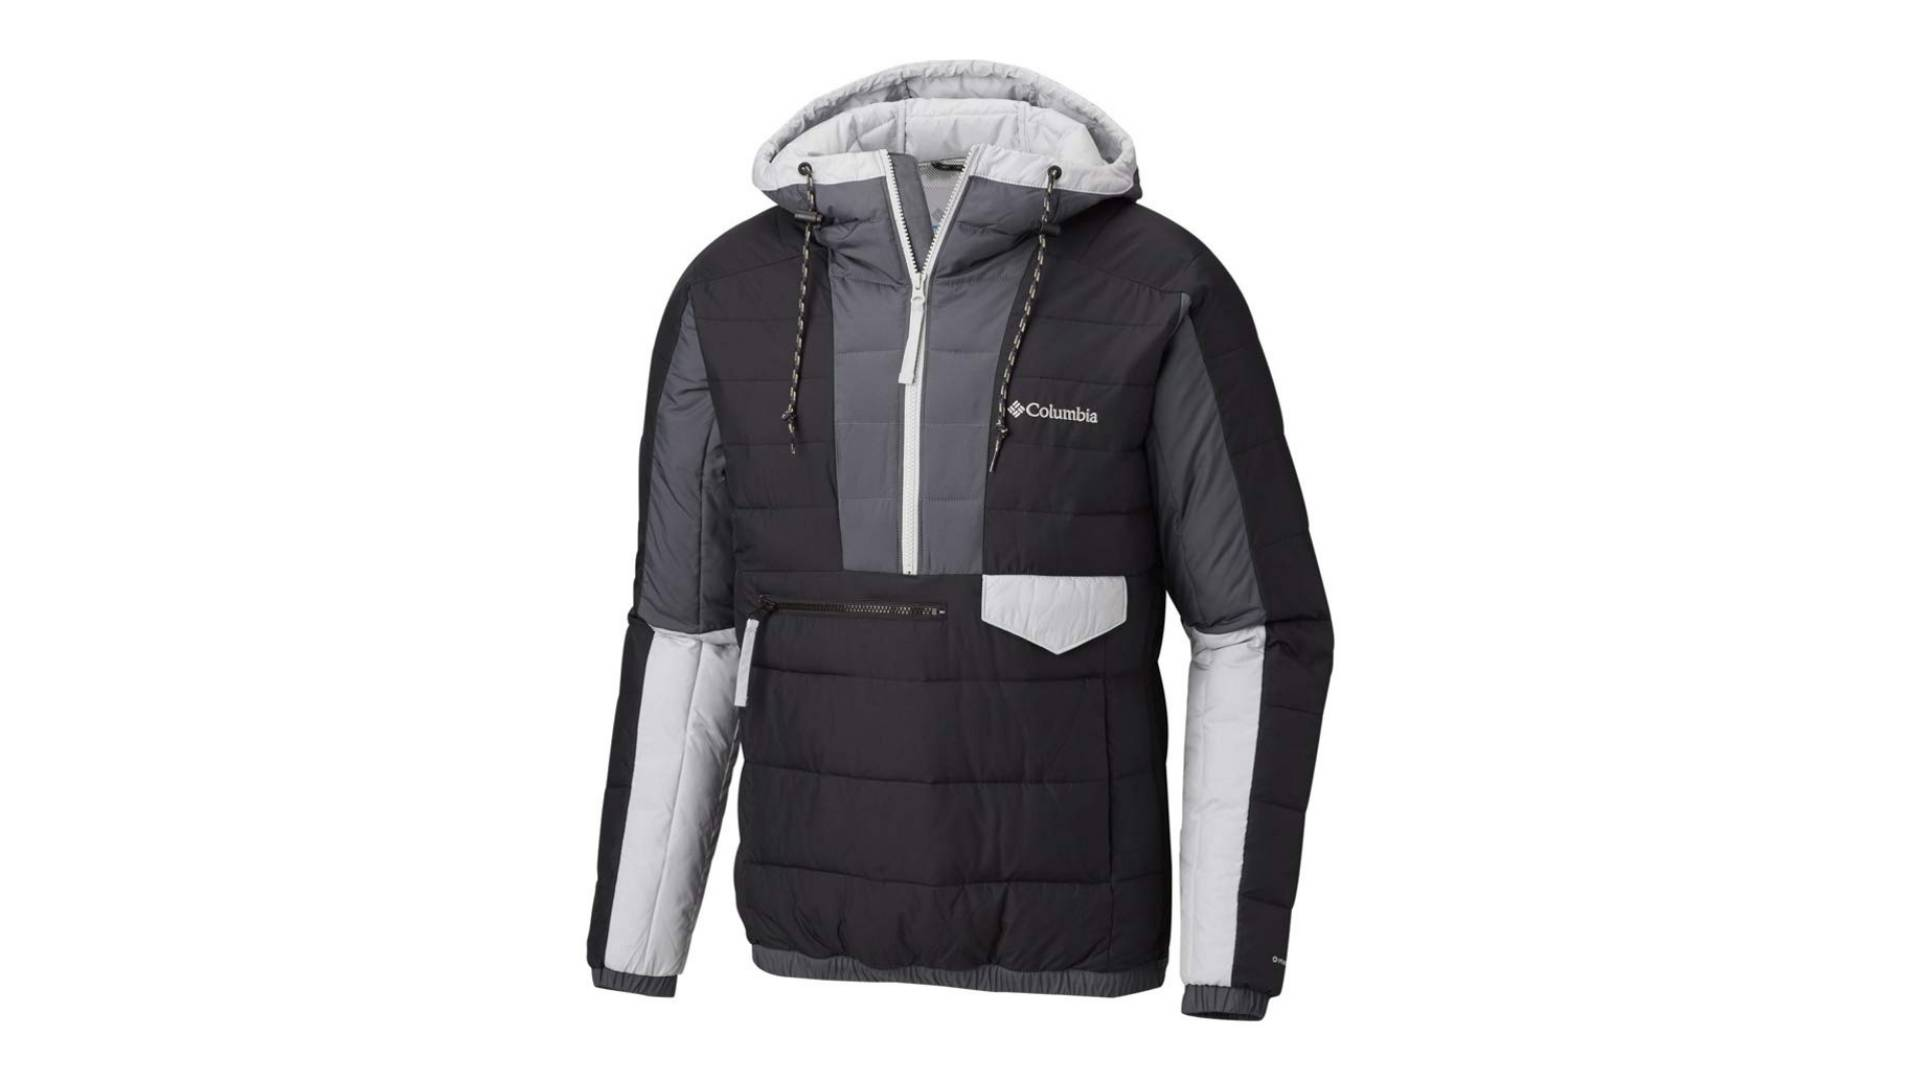 Norwester Anorak from Columbia